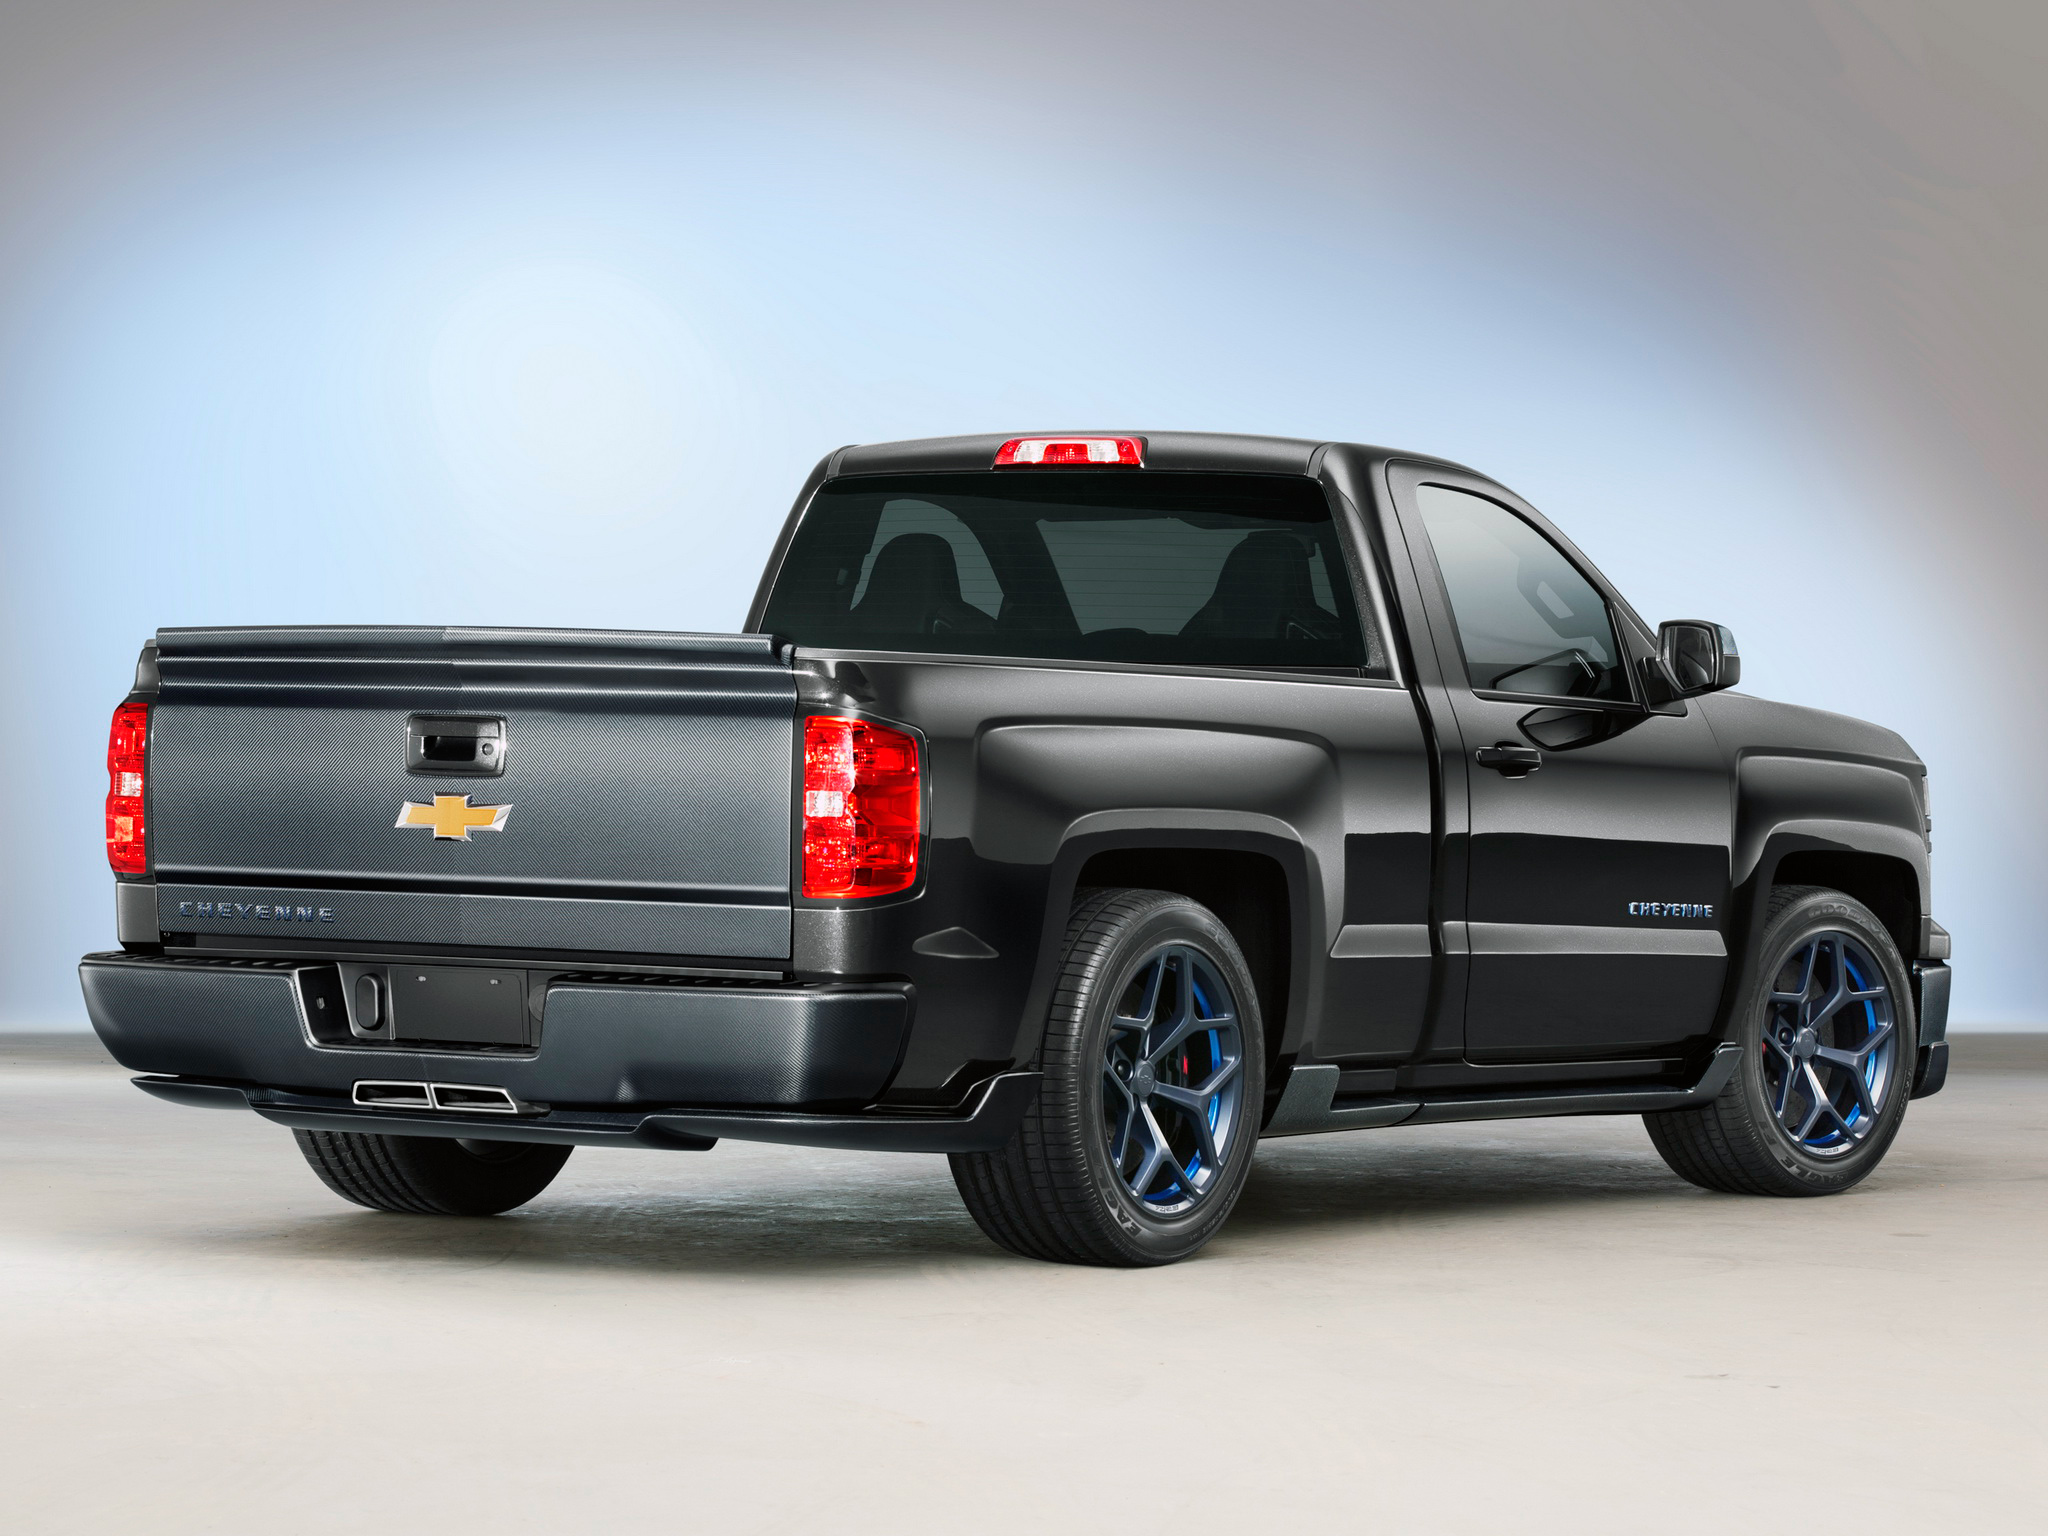 2013 chevrolet silverado cheyenne concept pickup tuning muscle f wallpaper 2048x1536 170878. Black Bedroom Furniture Sets. Home Design Ideas